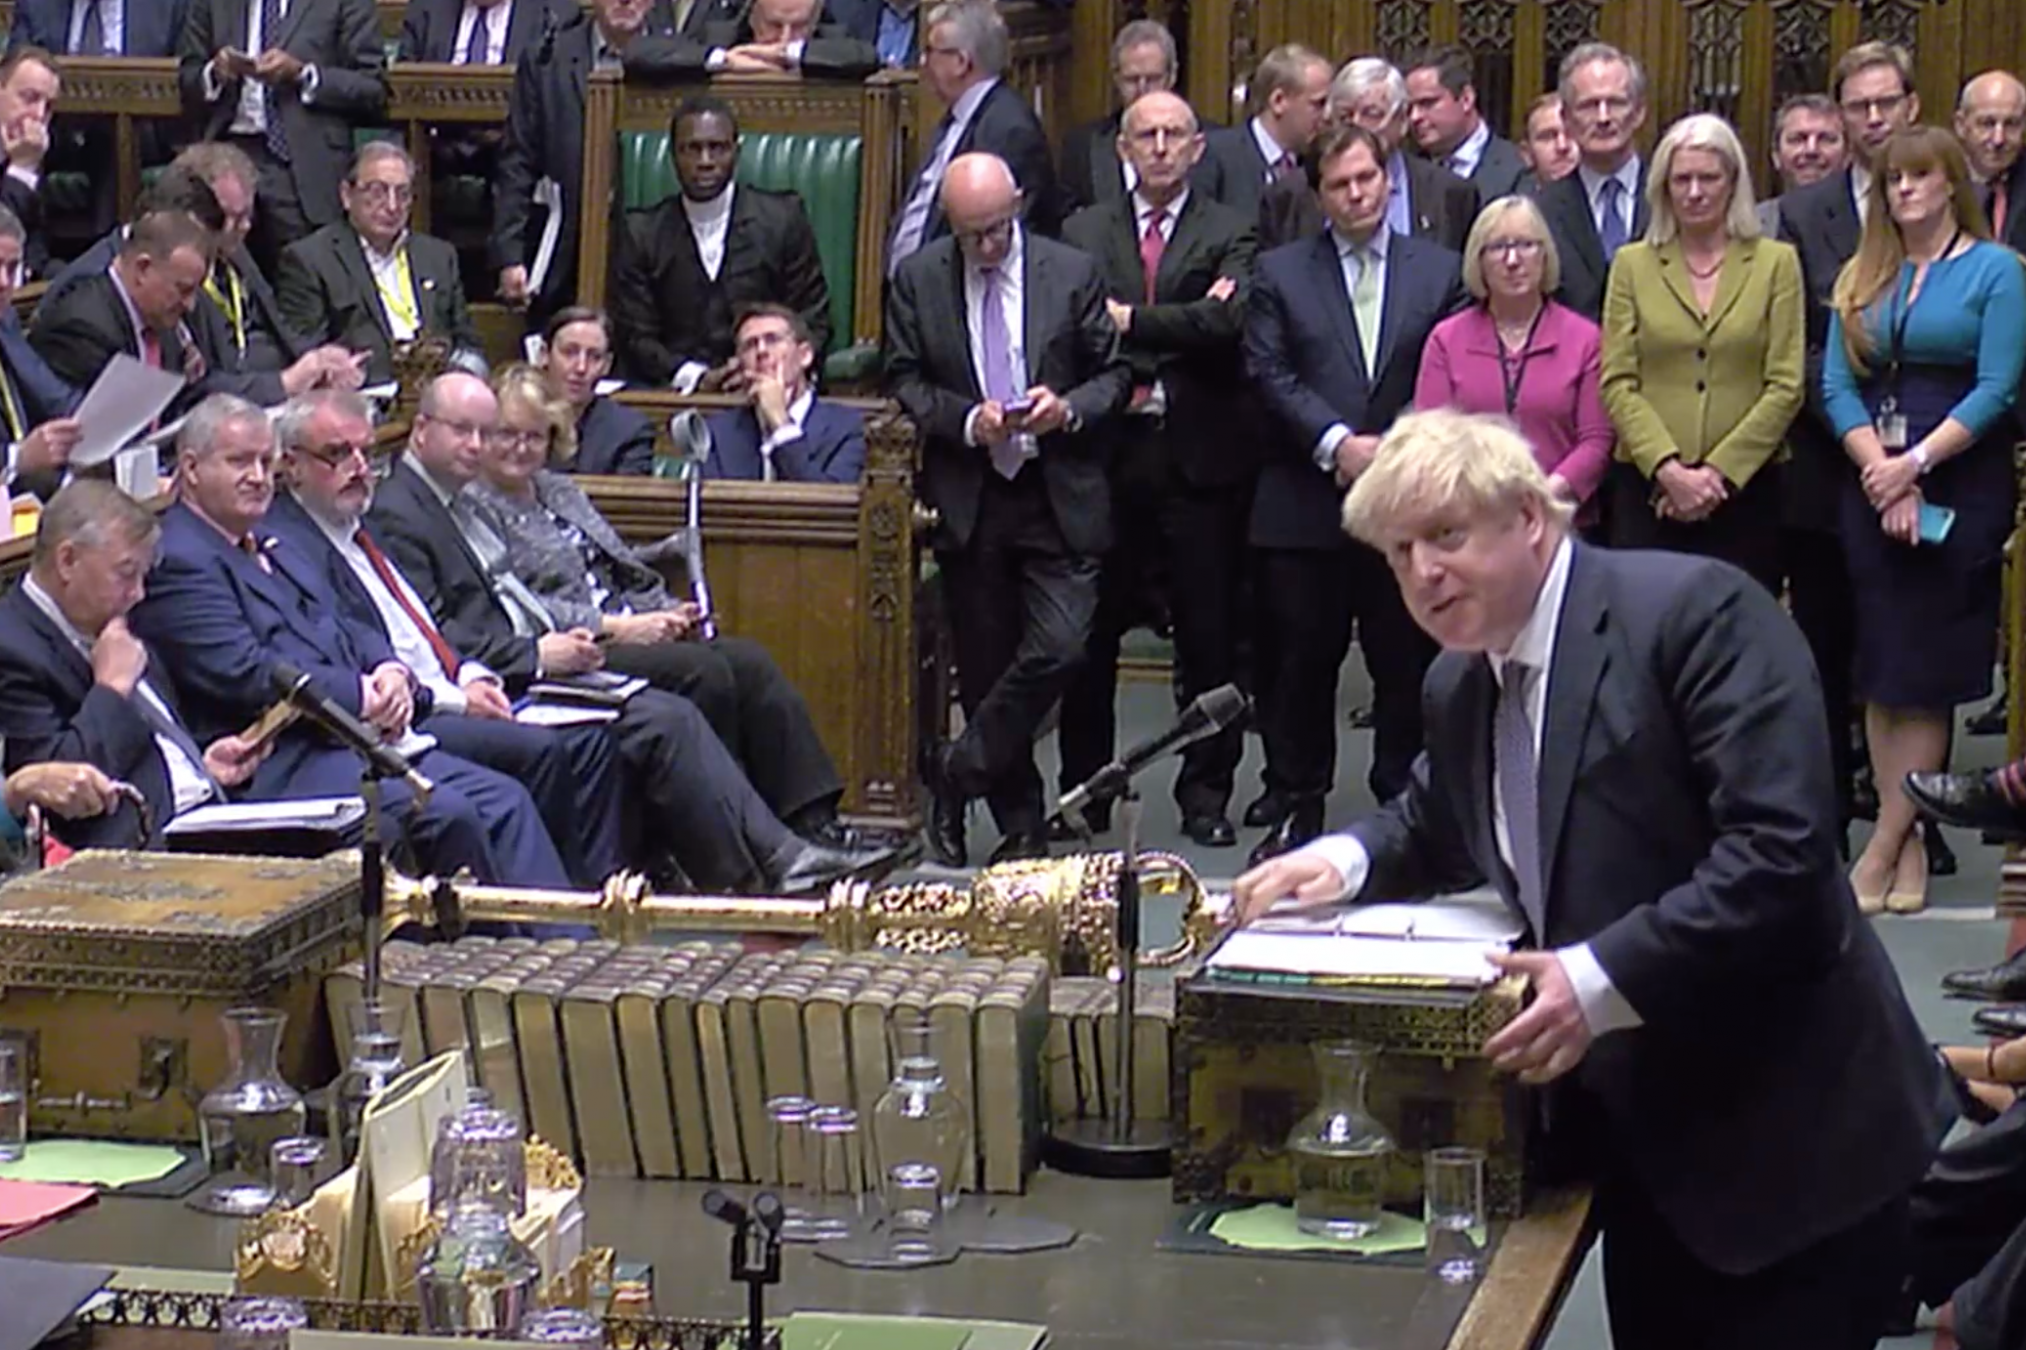 Boris Johnson turned up at PMQs, but how do you interrogate someone who's not even pretending to tell the truth?